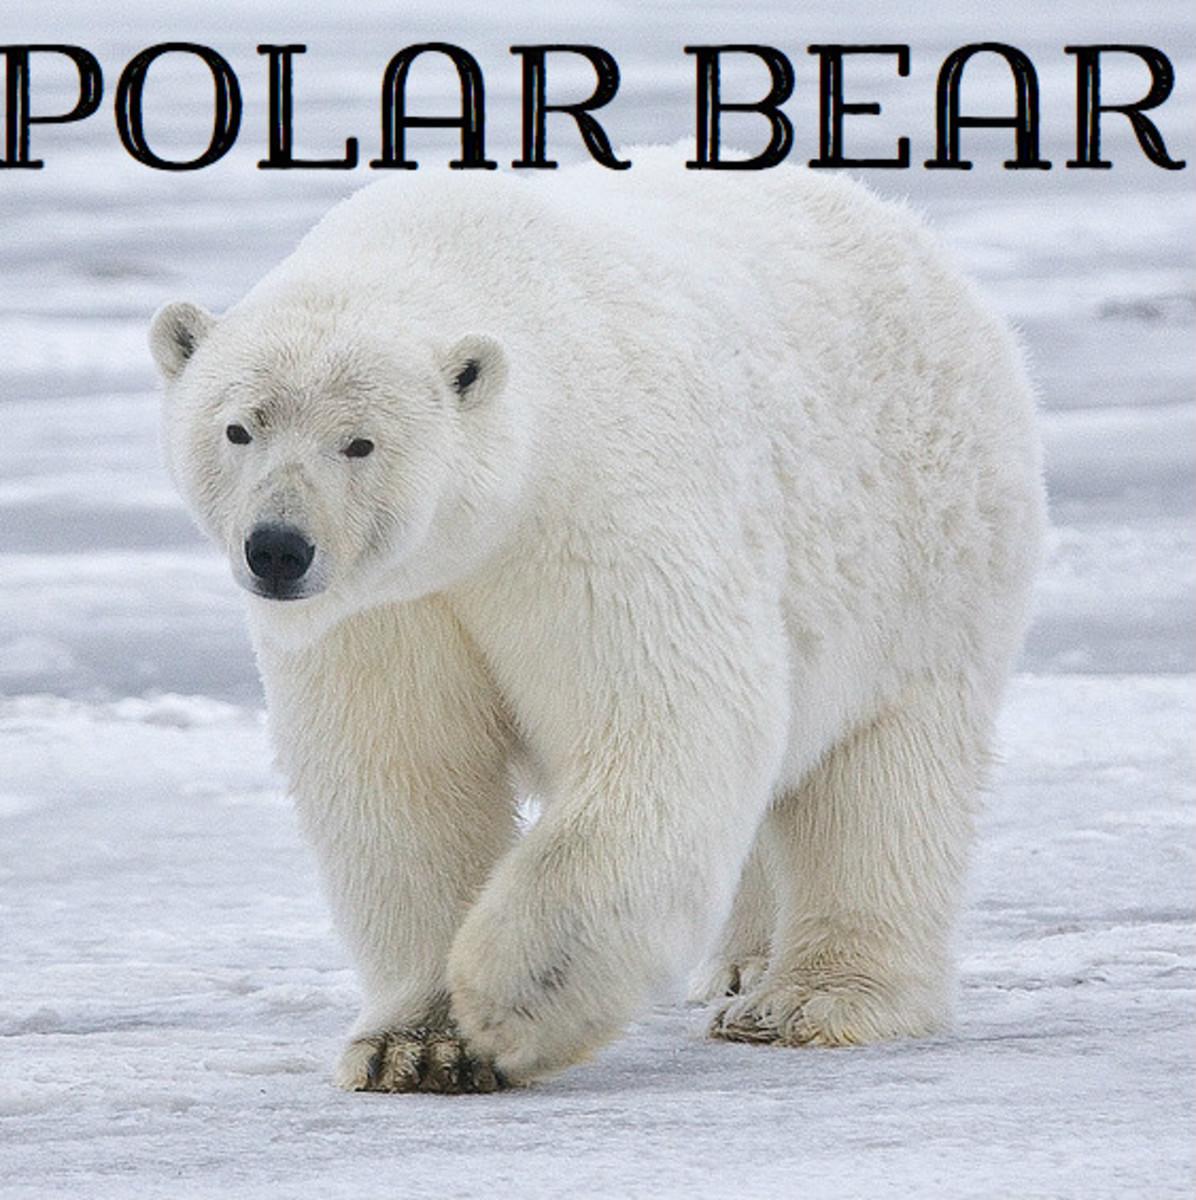 Polar Bear. Licensed under CC BY-SA 3.0 via Commons